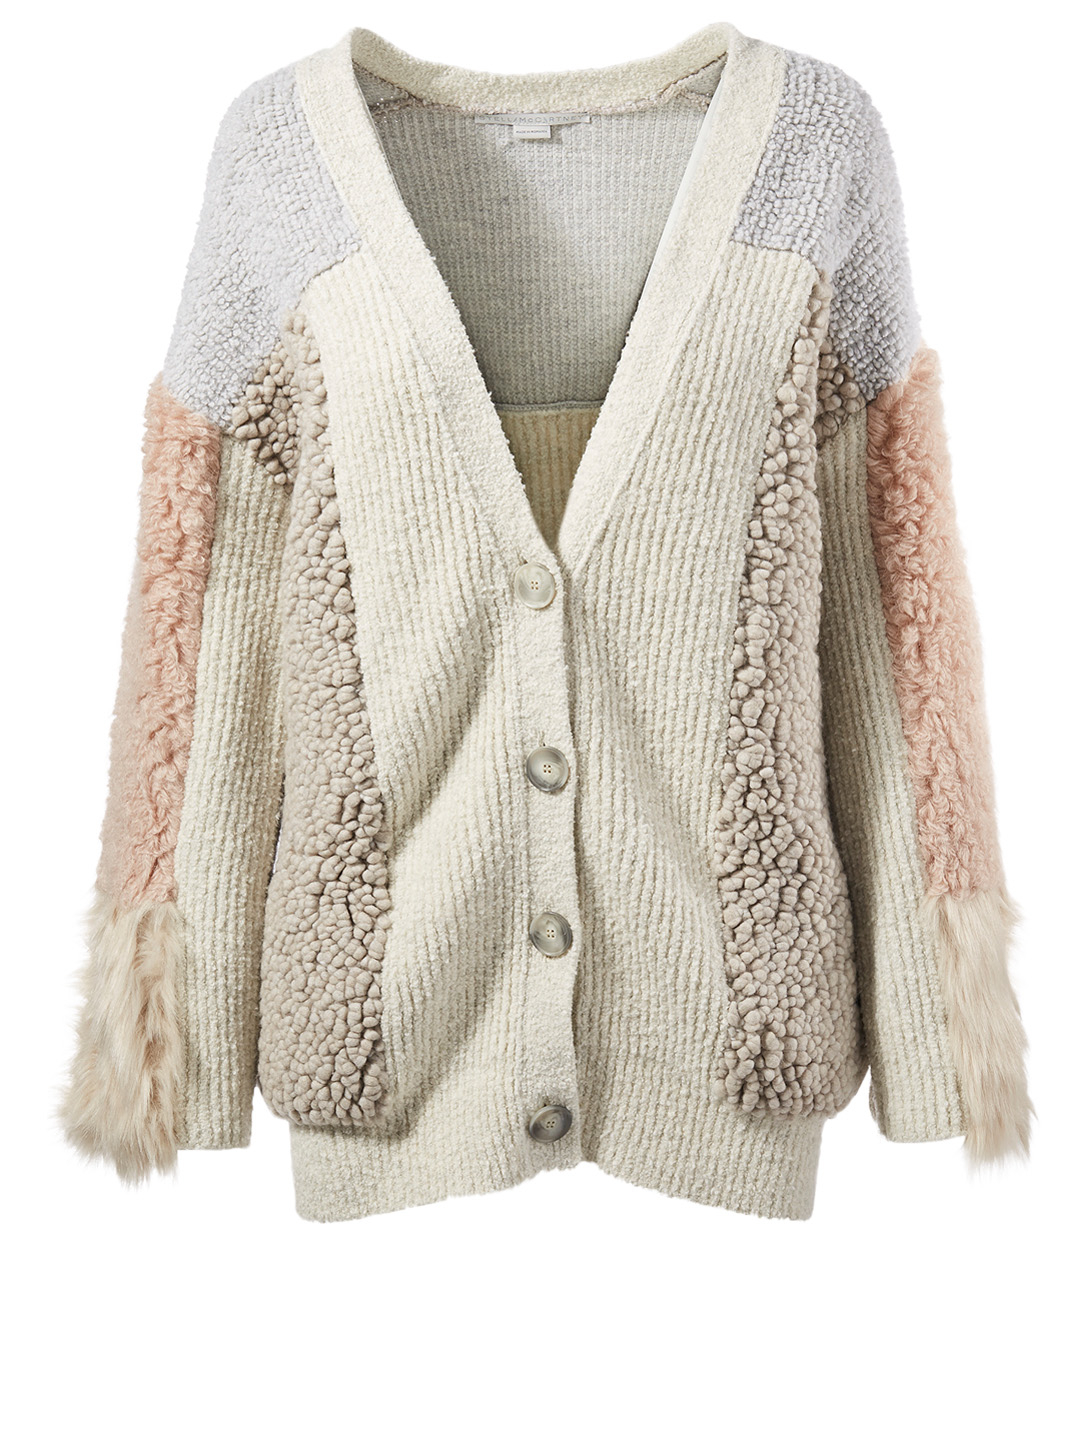 STELLA MCCARTNEY Faux Fur Patchwork Cardigan Women's White